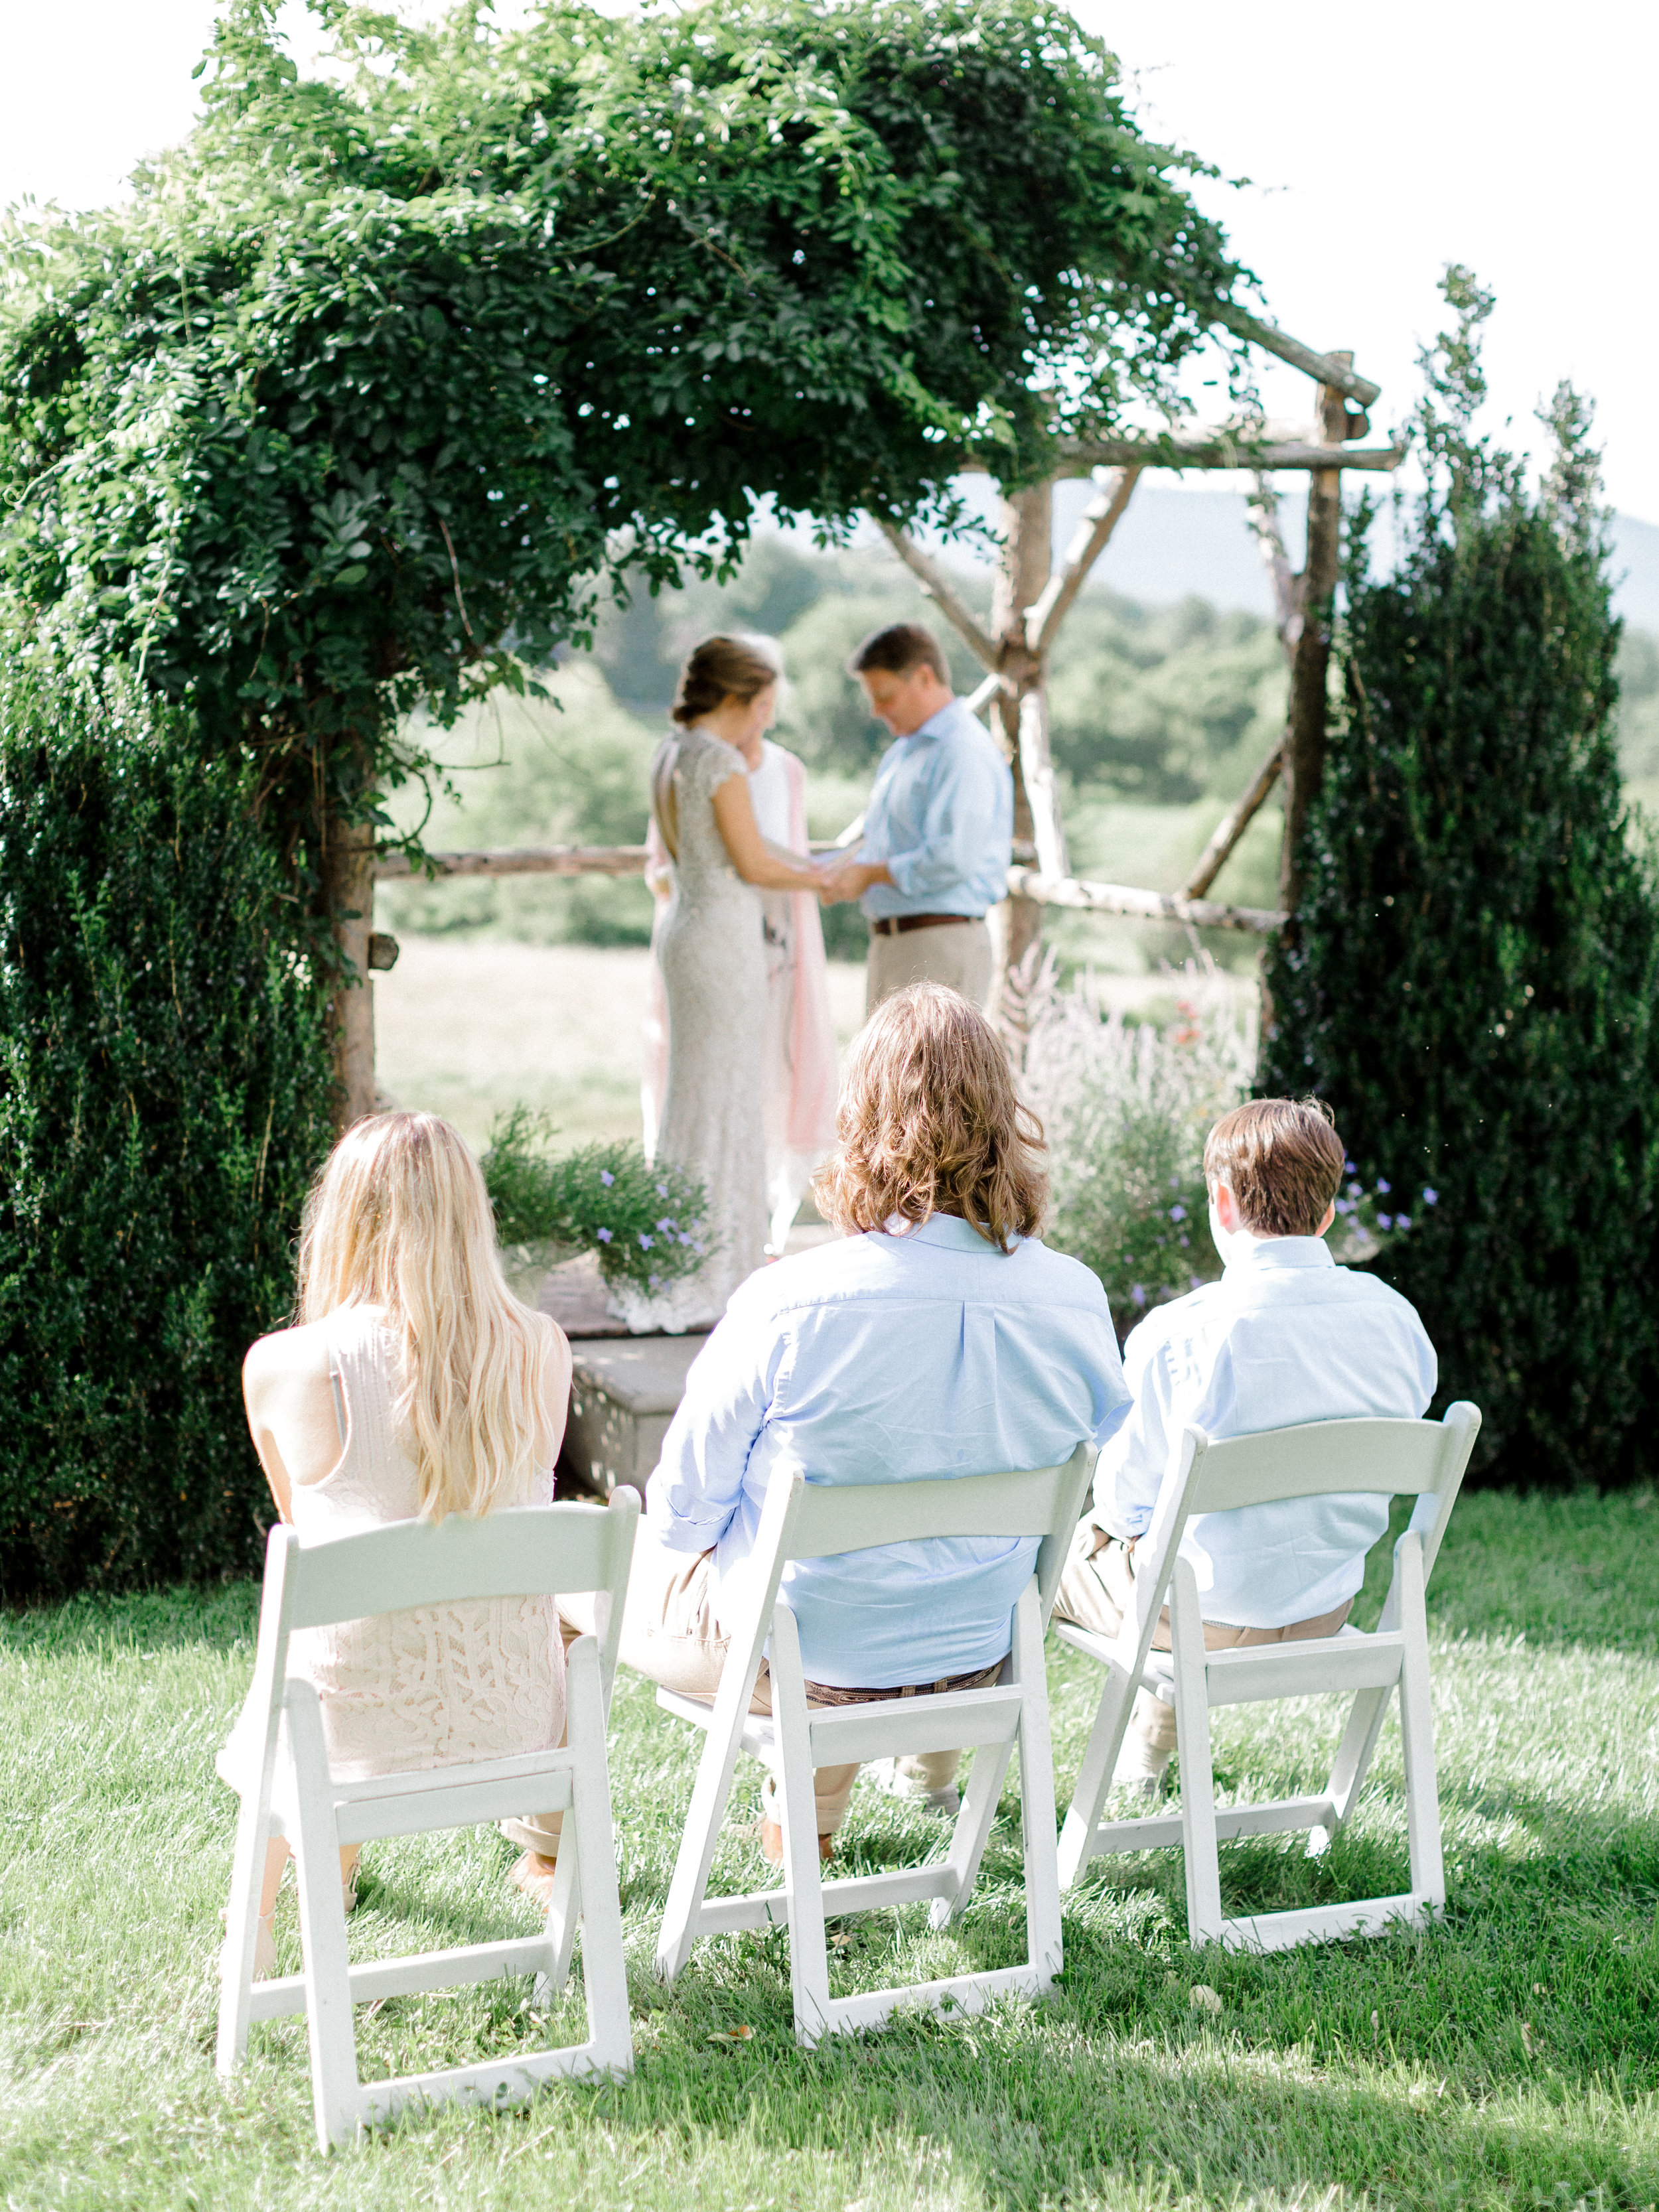 Intimate Ceremonies - Angie & Shaun had just 3 guest for their pop-up wedding. No number is too small to celebrate here at Silverbrook.